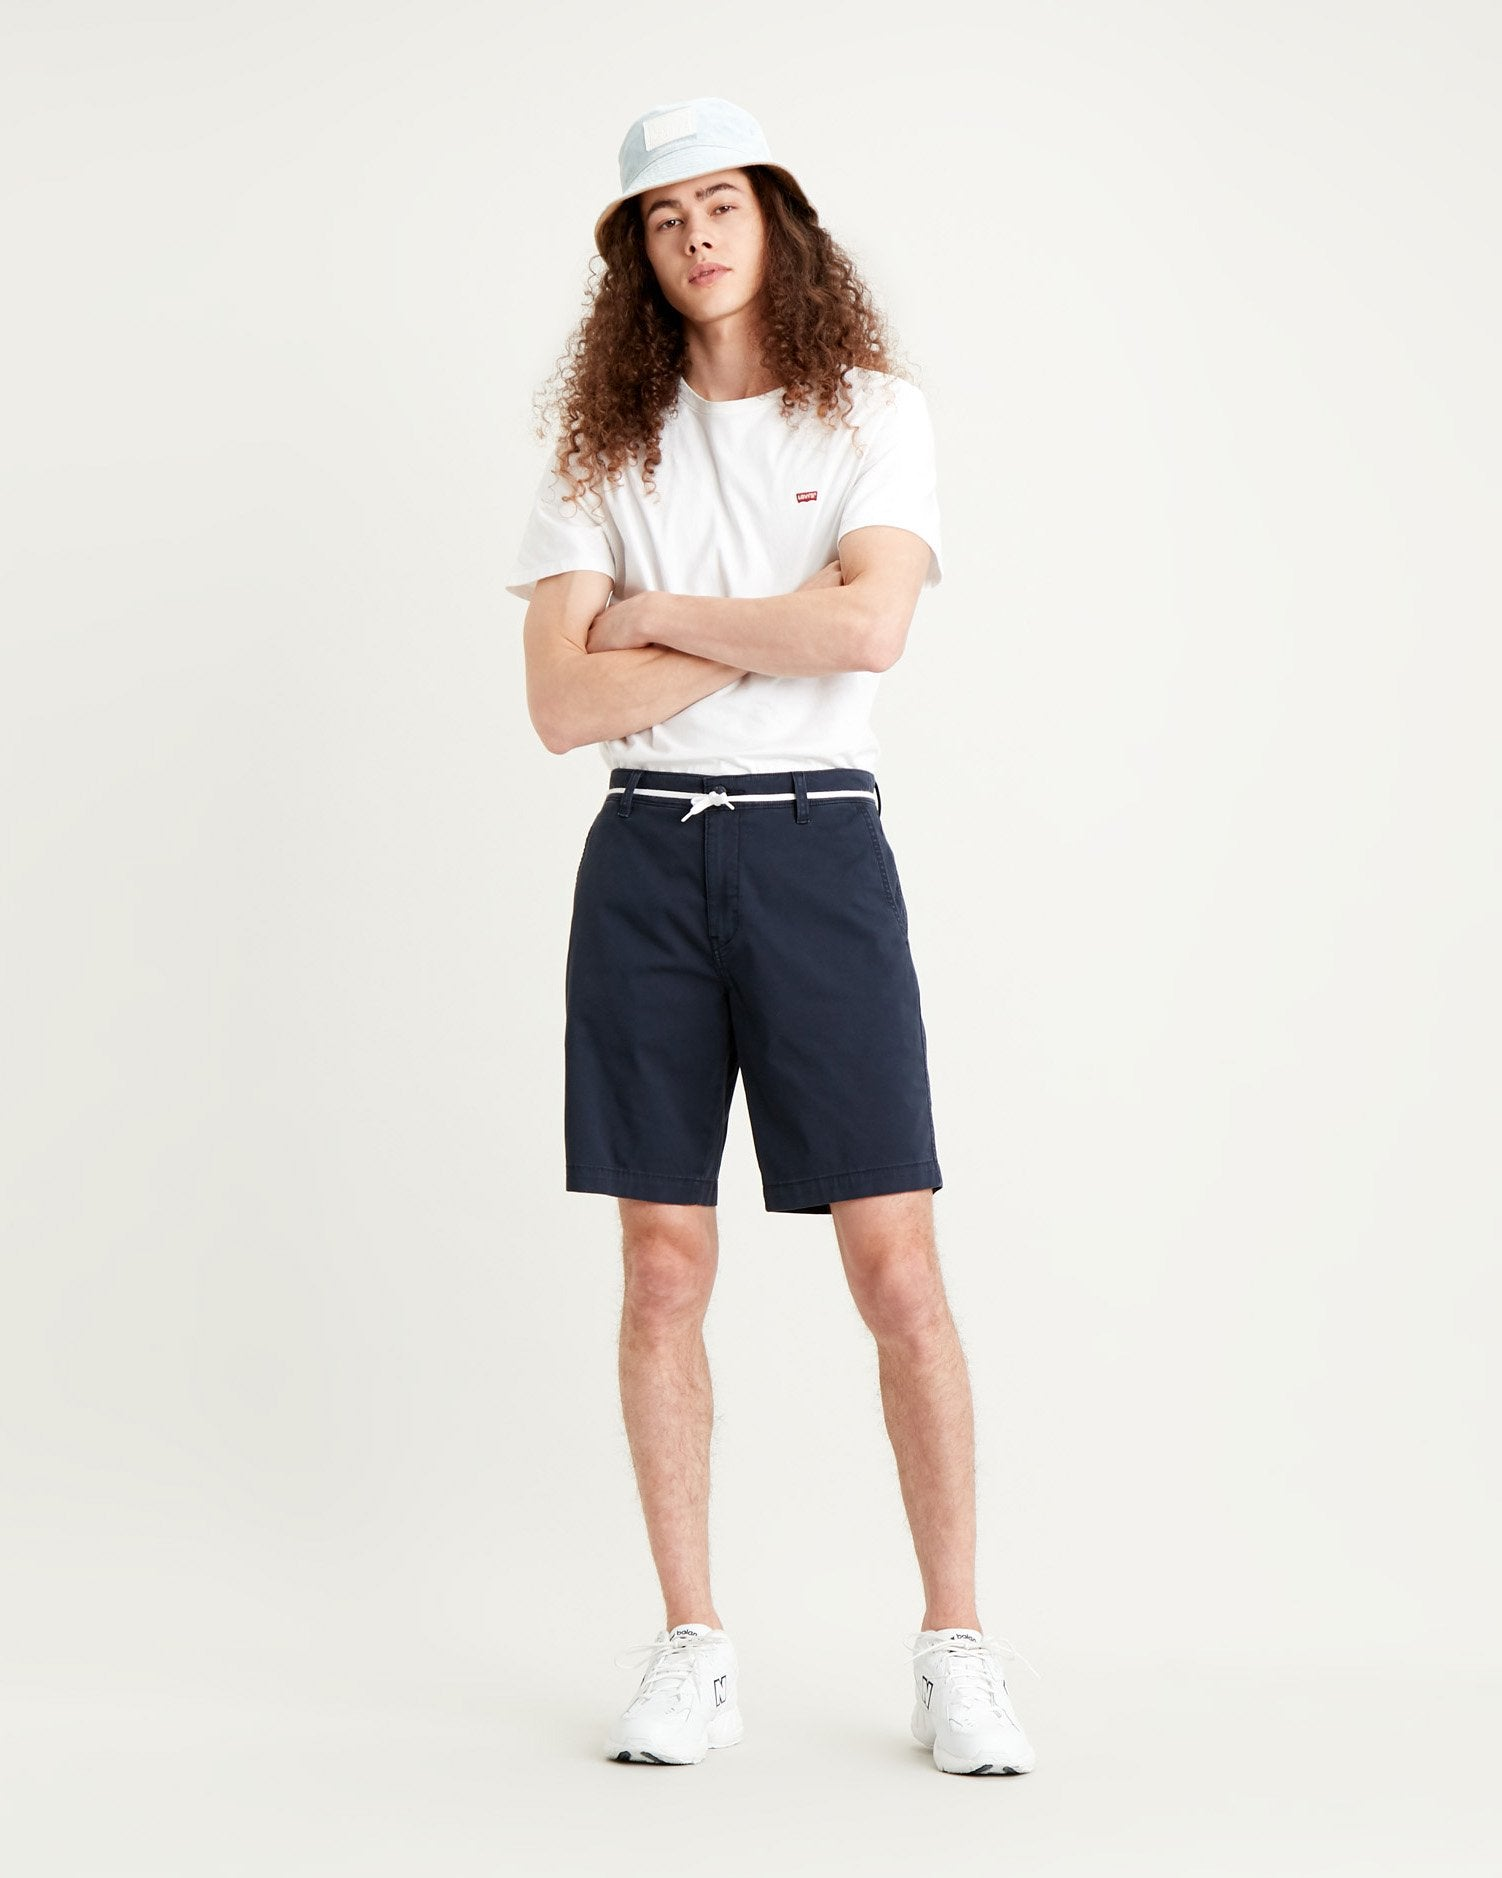 Levi's® XX Chino Taper Shorts II - Baltic Navy W30 17202-000930 Levi's® Shorts